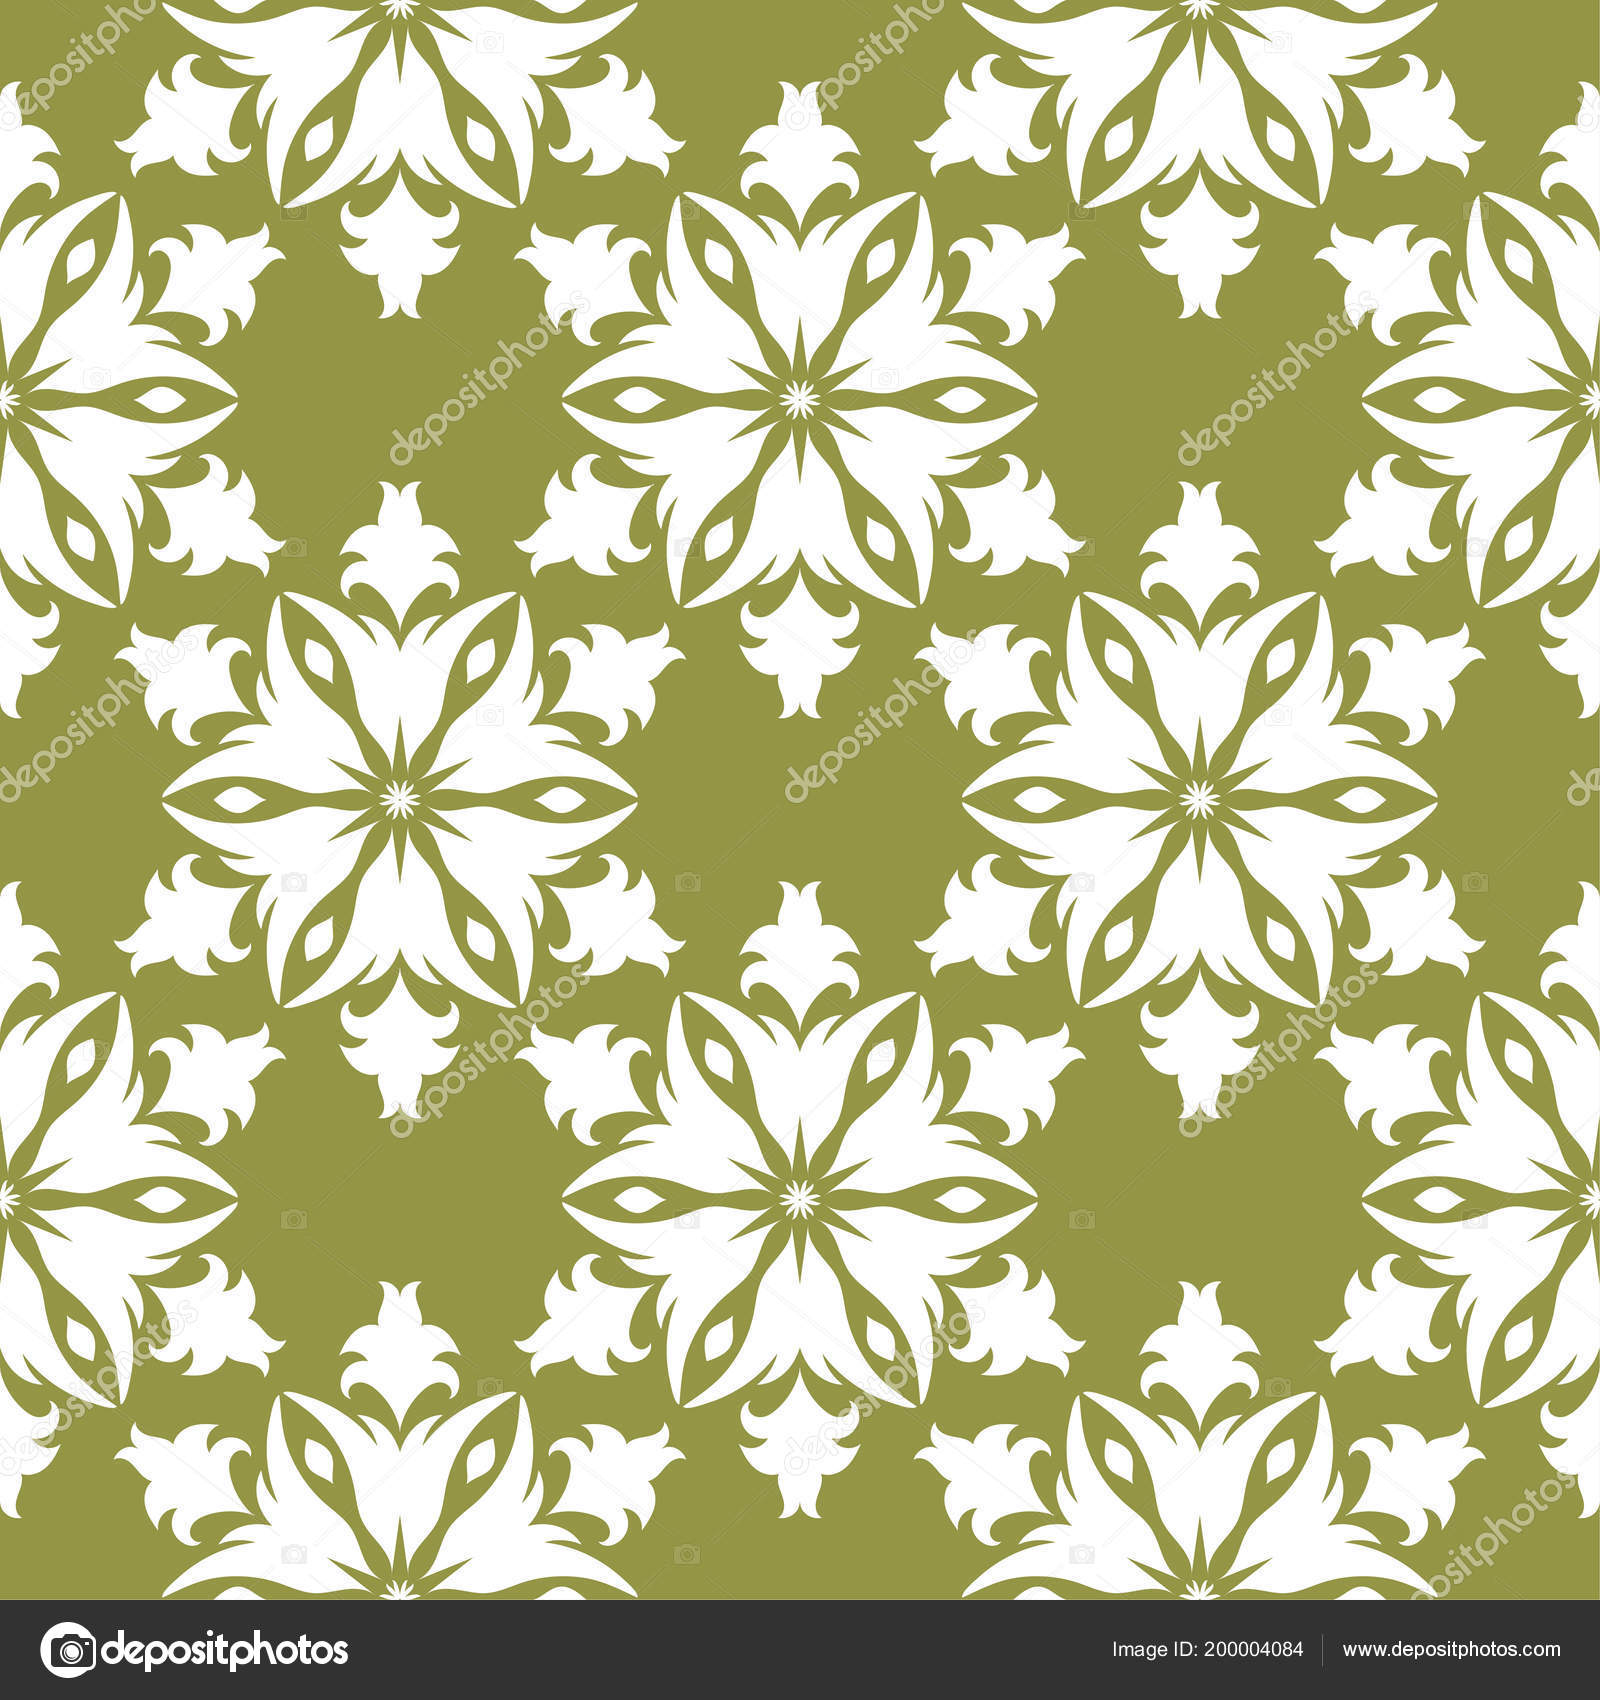 White Floral Design Olive Green Background Seamless Pattern Textile Wallpapers Stock Vector